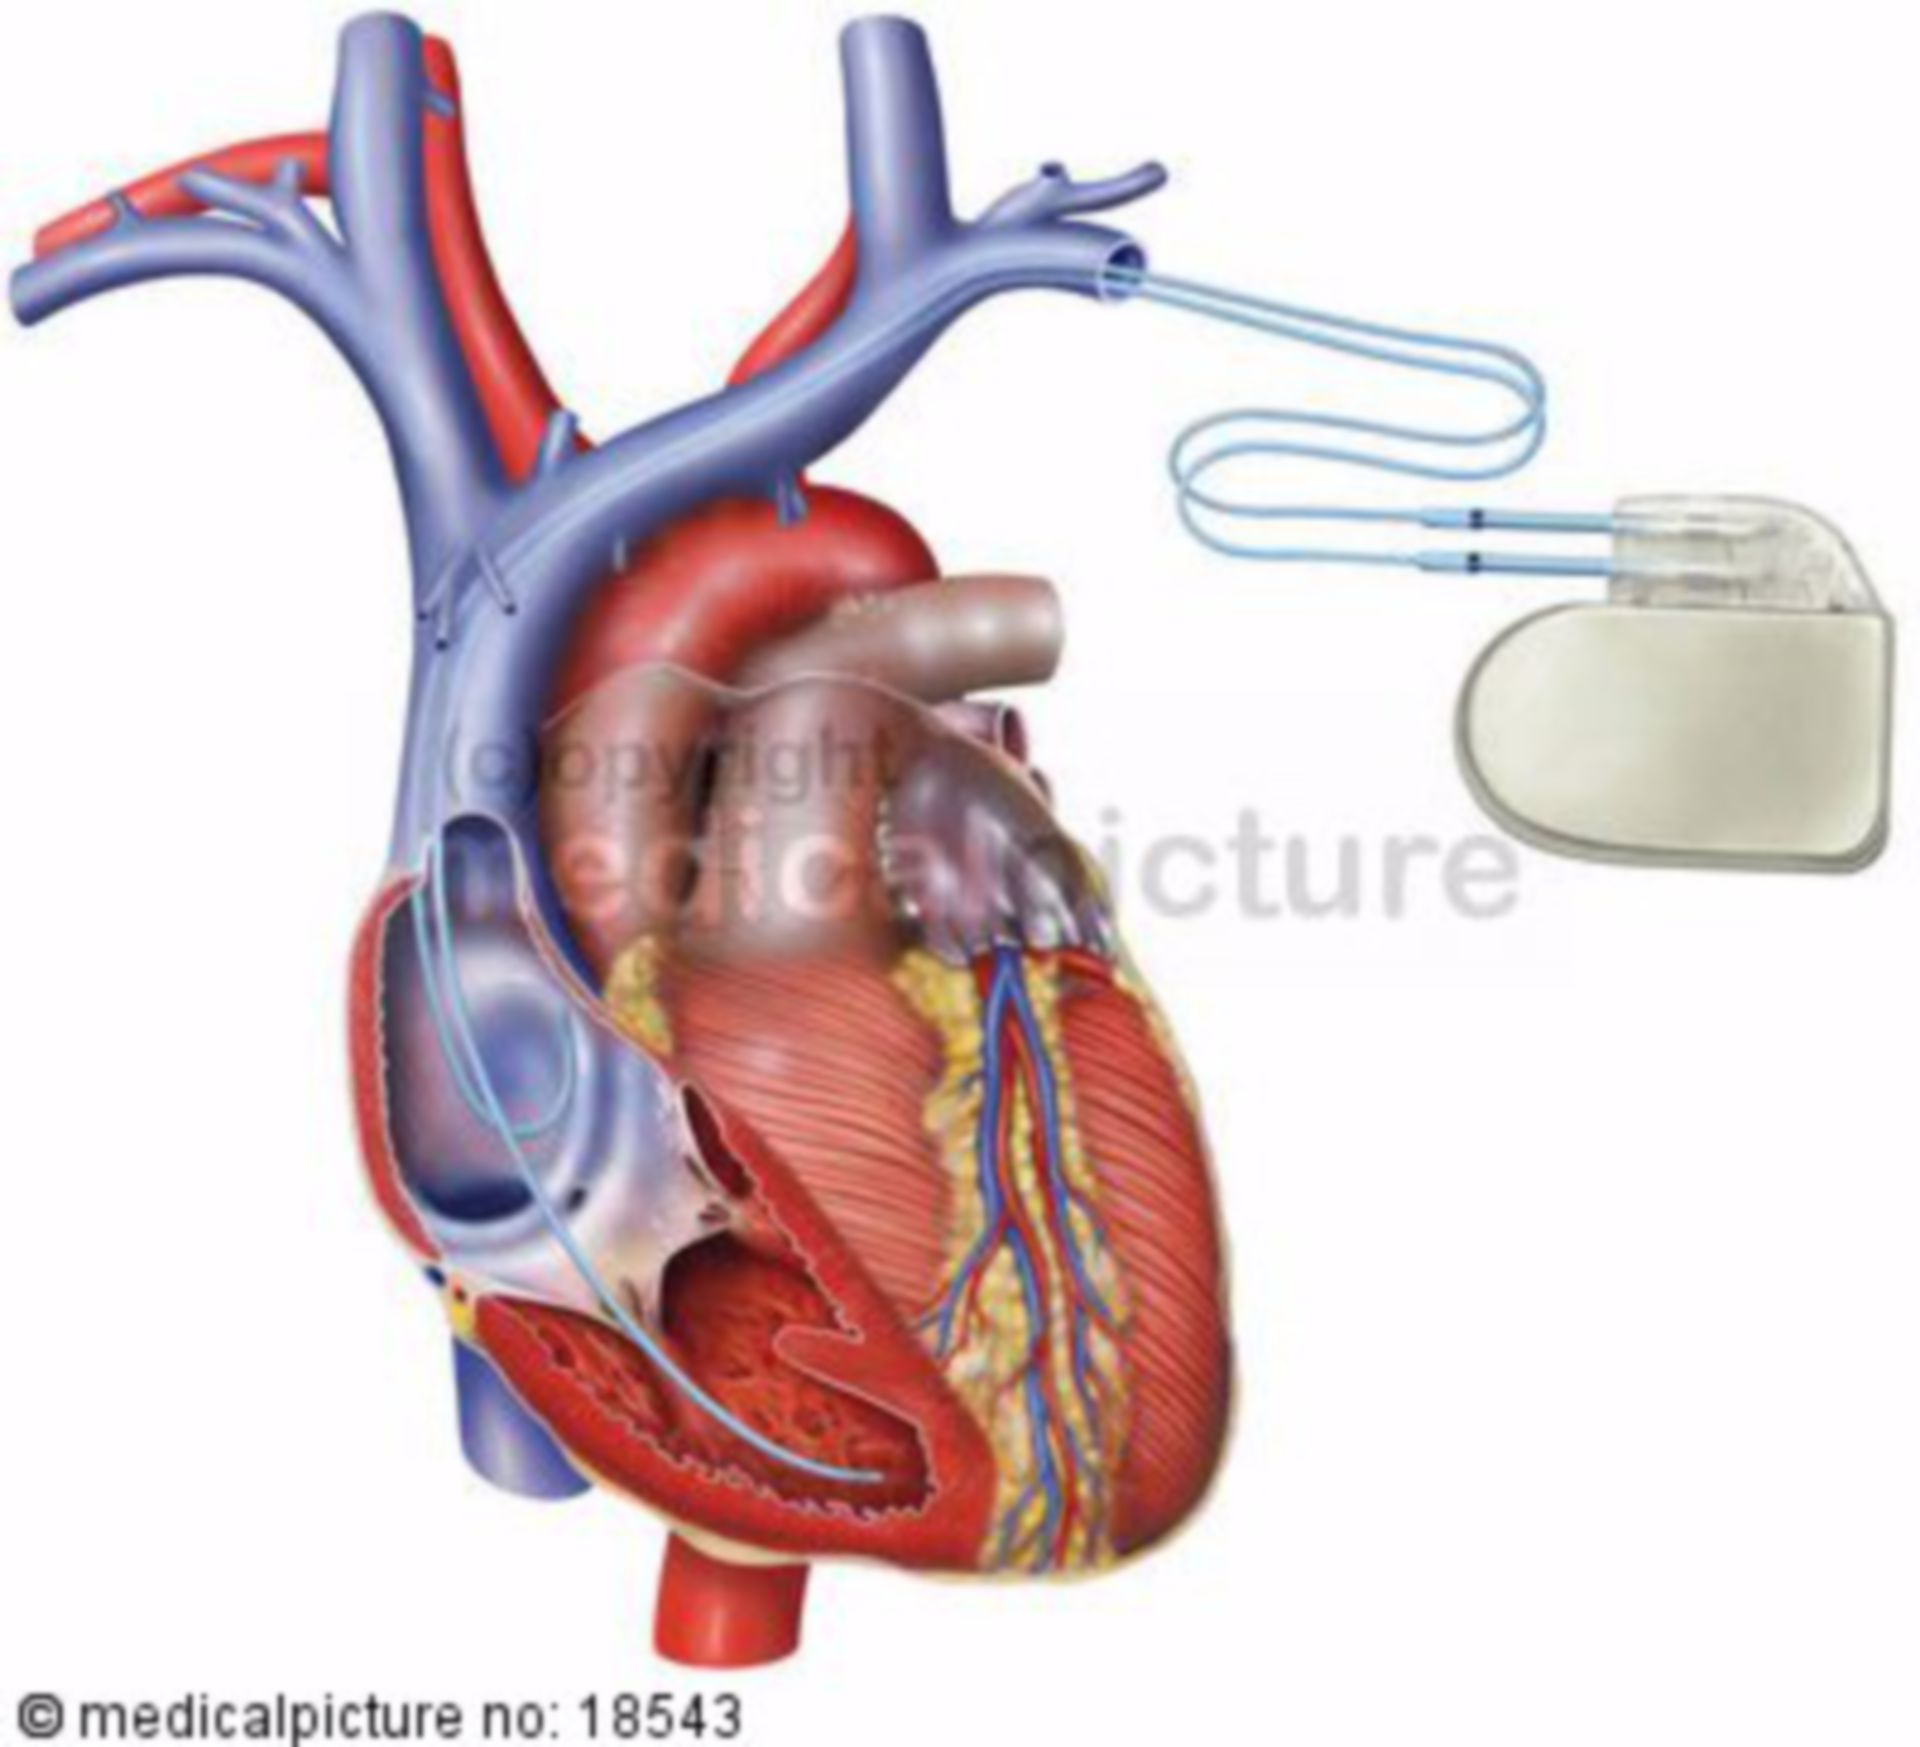 Cuore con pacemaker (2)